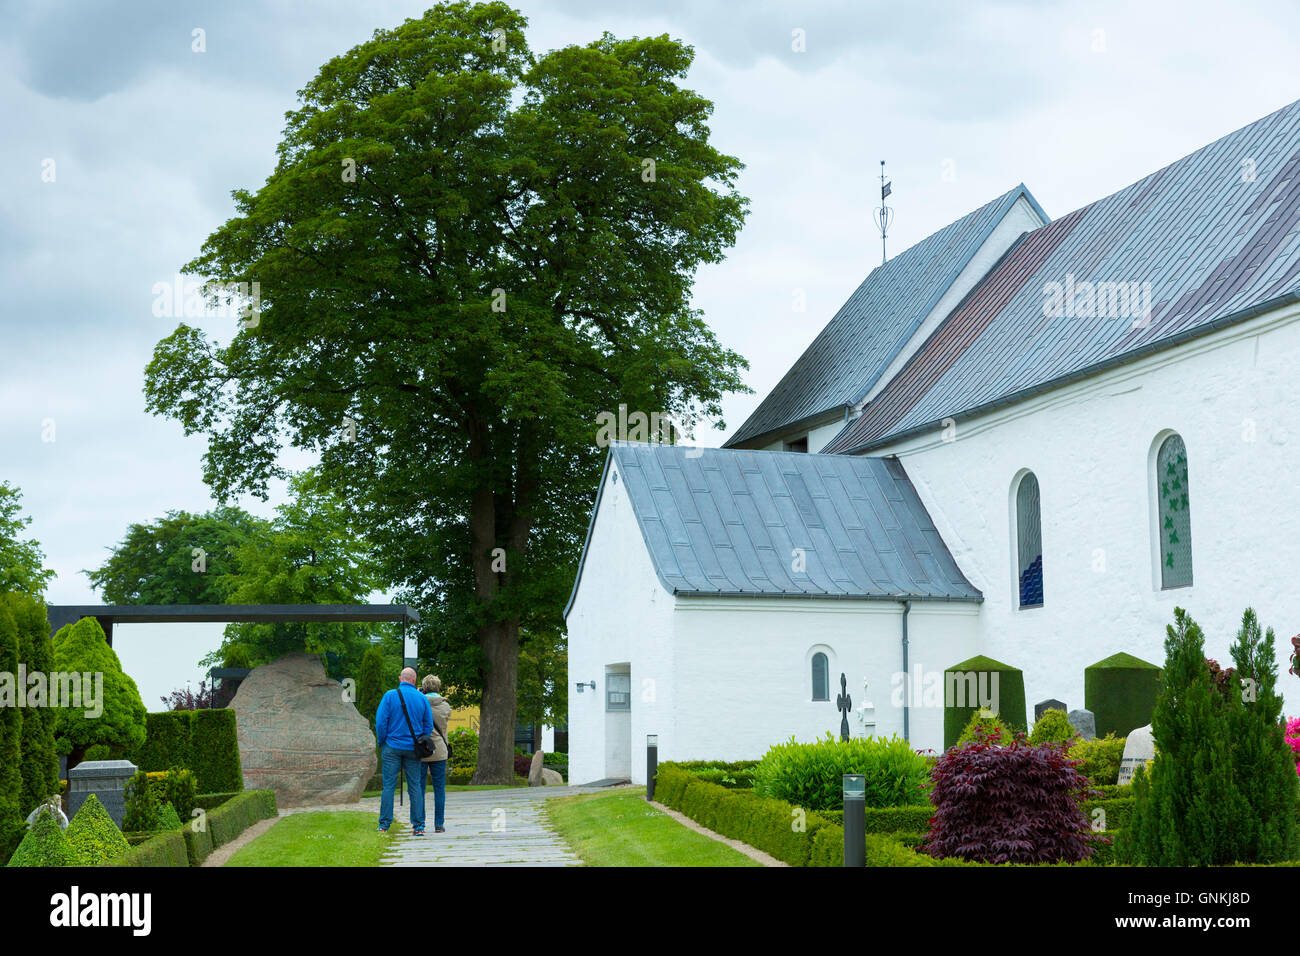 Visitors at Jelling Church and UNESCO Jelling Stones runestones, birthplace of Christianity in Denmark - Stock Image